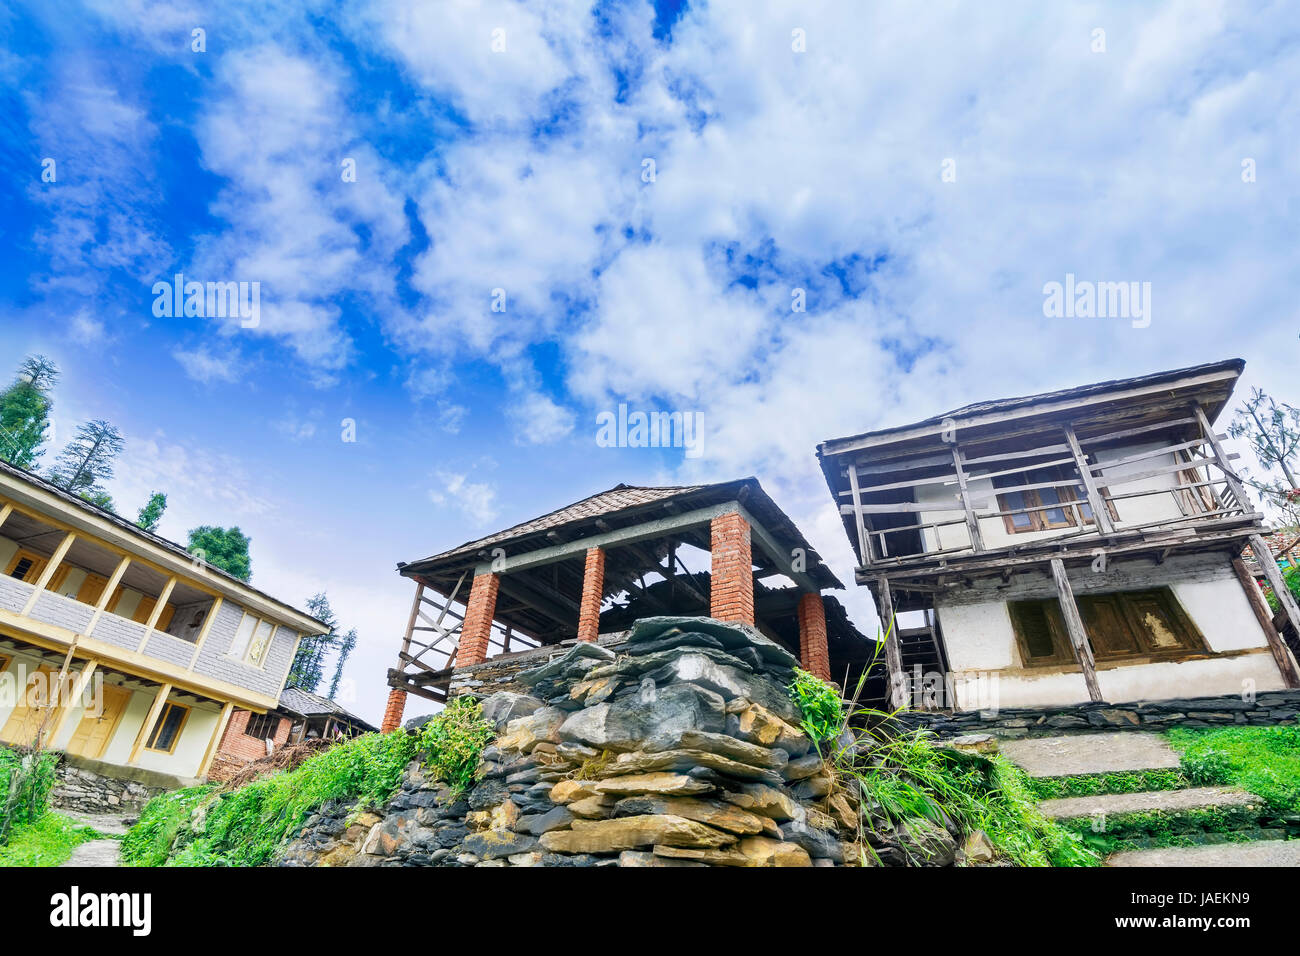 Old and new abandoned wooden houses surrounded by beautiful nature and rocks on top of a hill in a tiny village - Stock Image